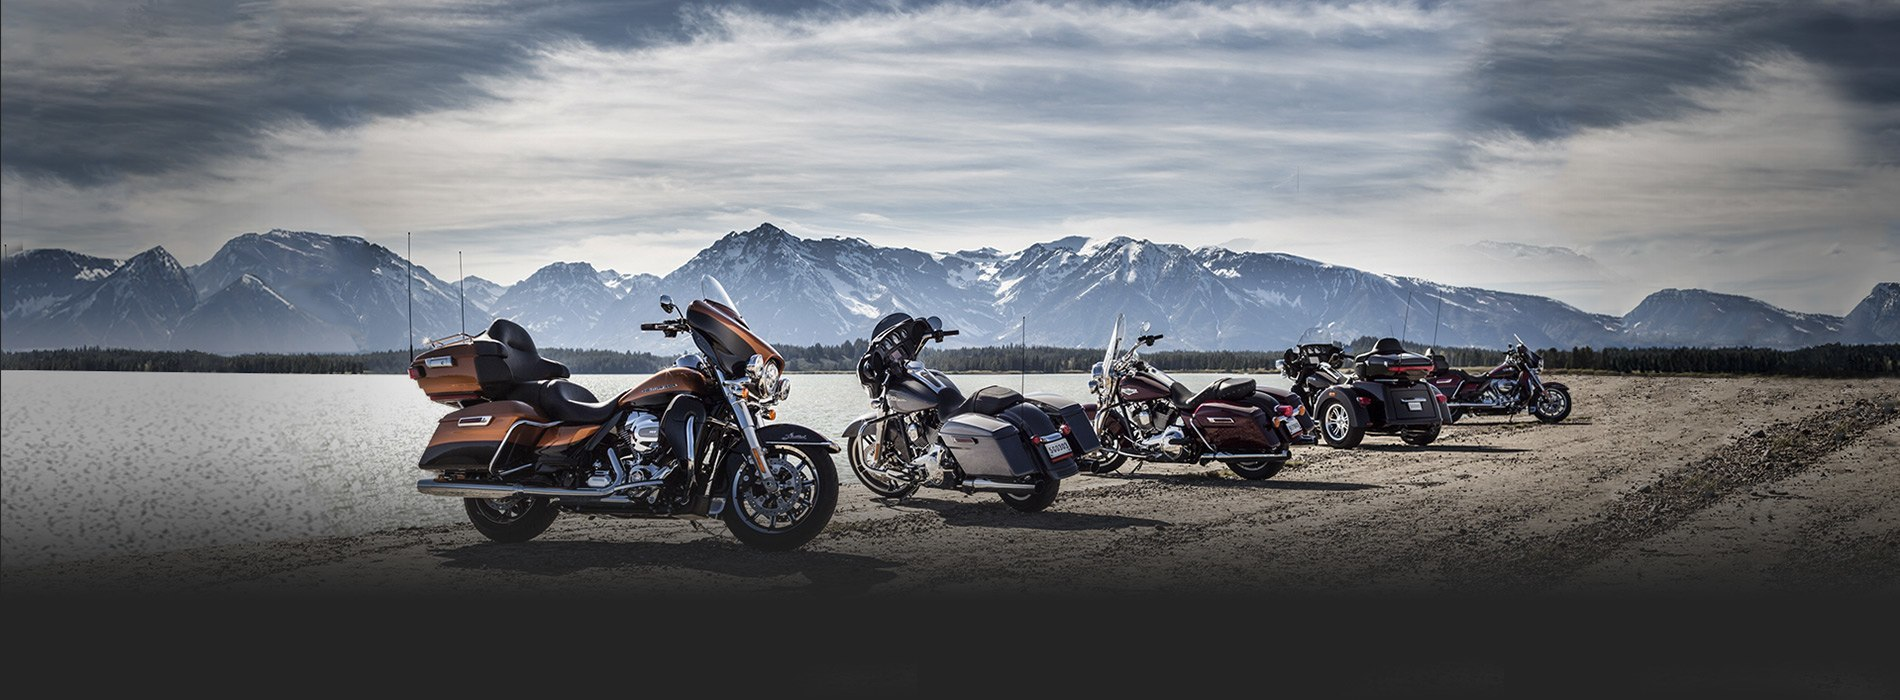 harley davidson project rushmore 2014